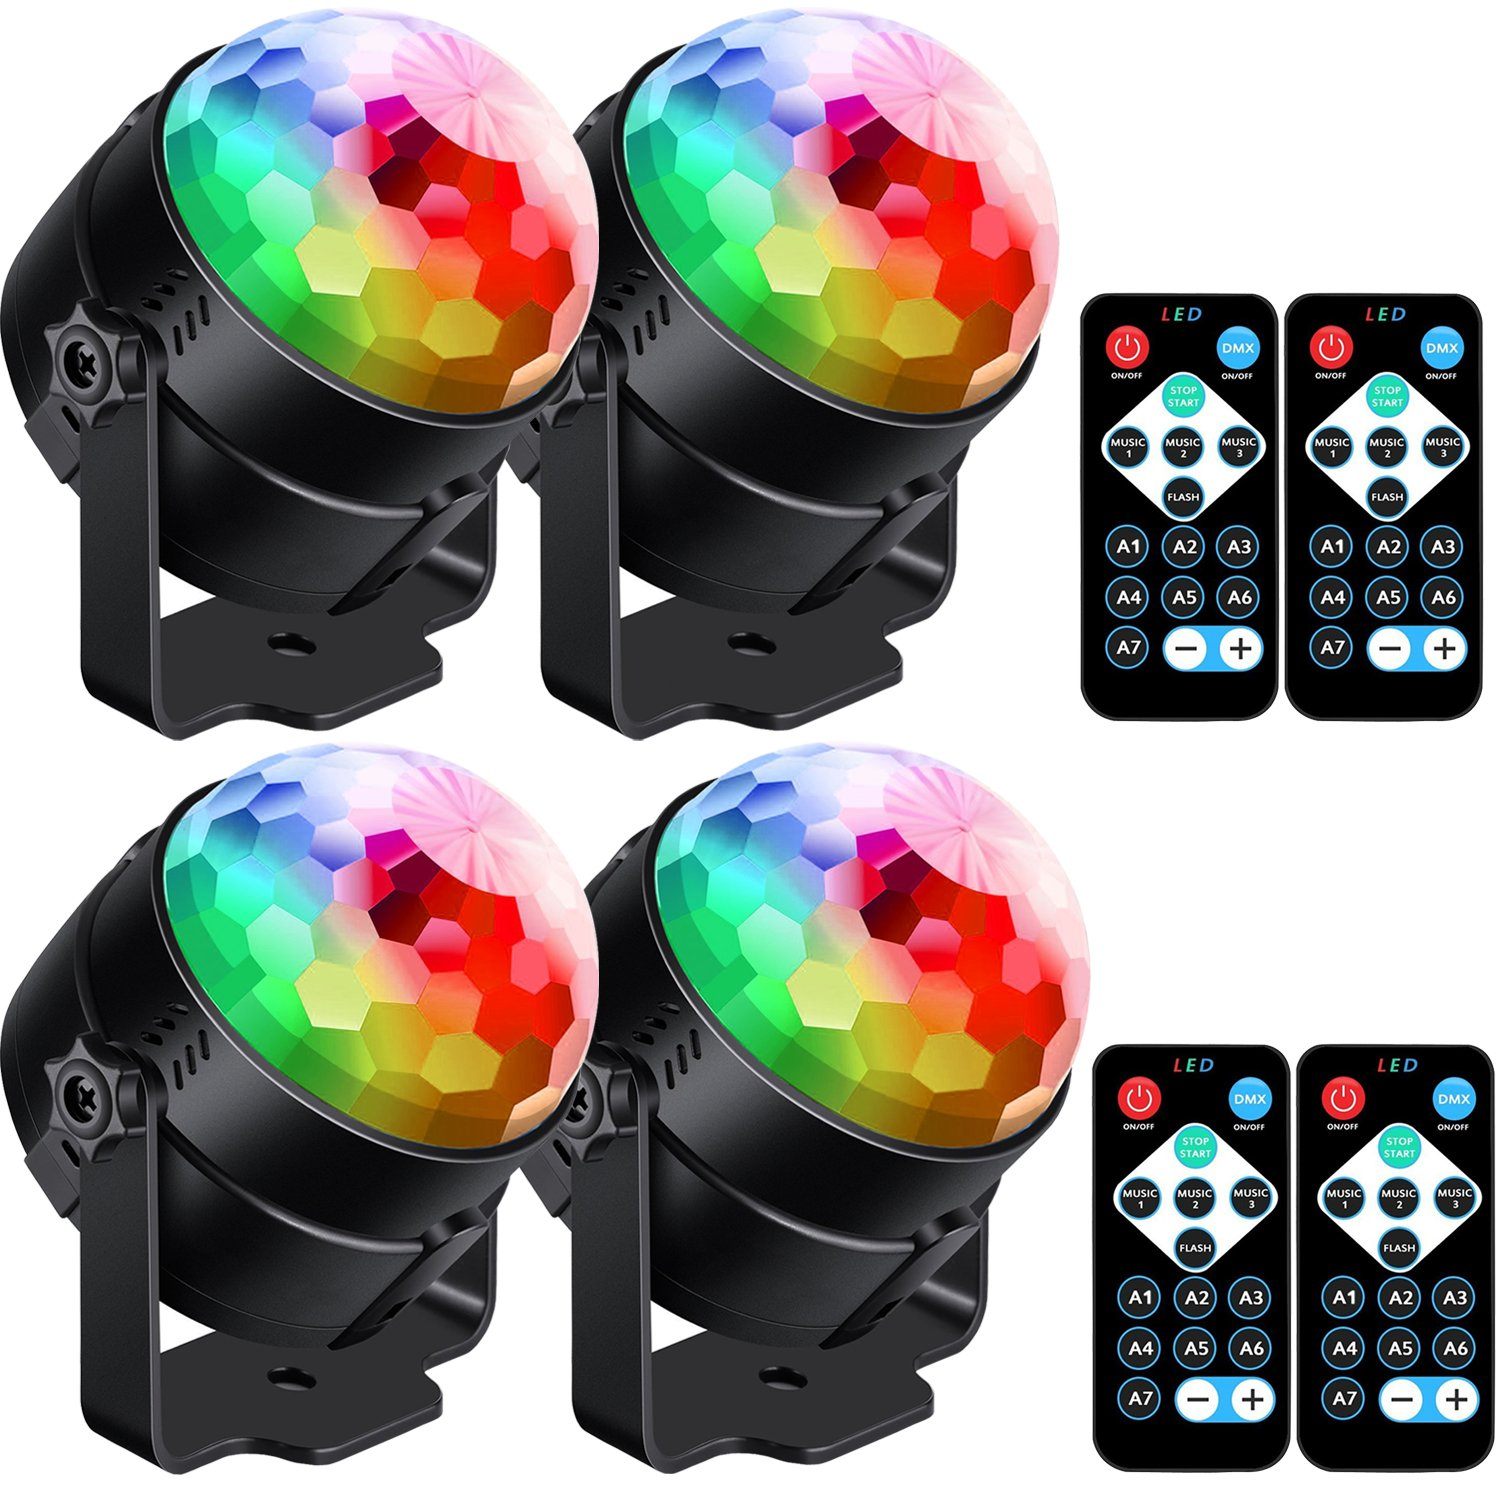 4 Pack Sound Activated Party Lights with Remote Control Dj Lighting RBG Disco Ball Light Strobe Lamp 7 Modes Stage Par Light for Home Room Dance Parties Bar Karaoke Xmas Wedding Show Club